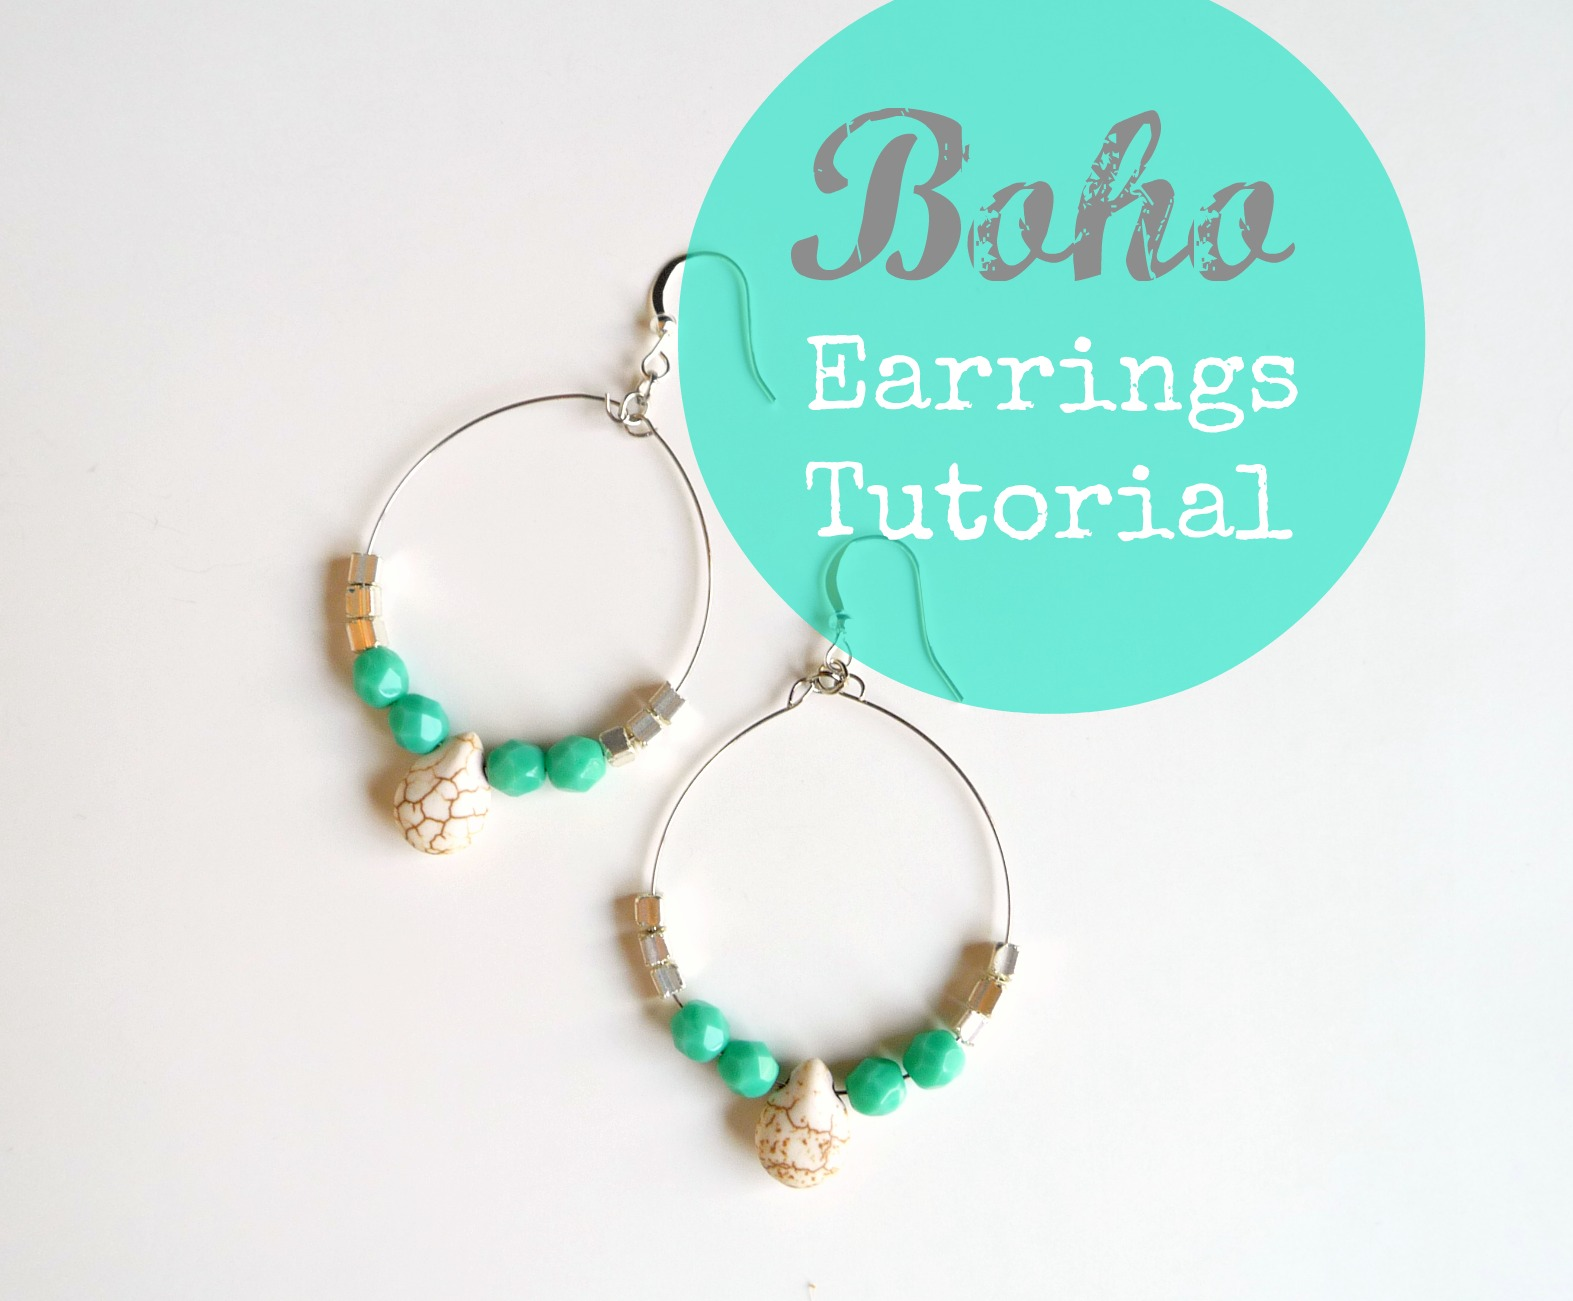 boho earrings jewelry tutorial